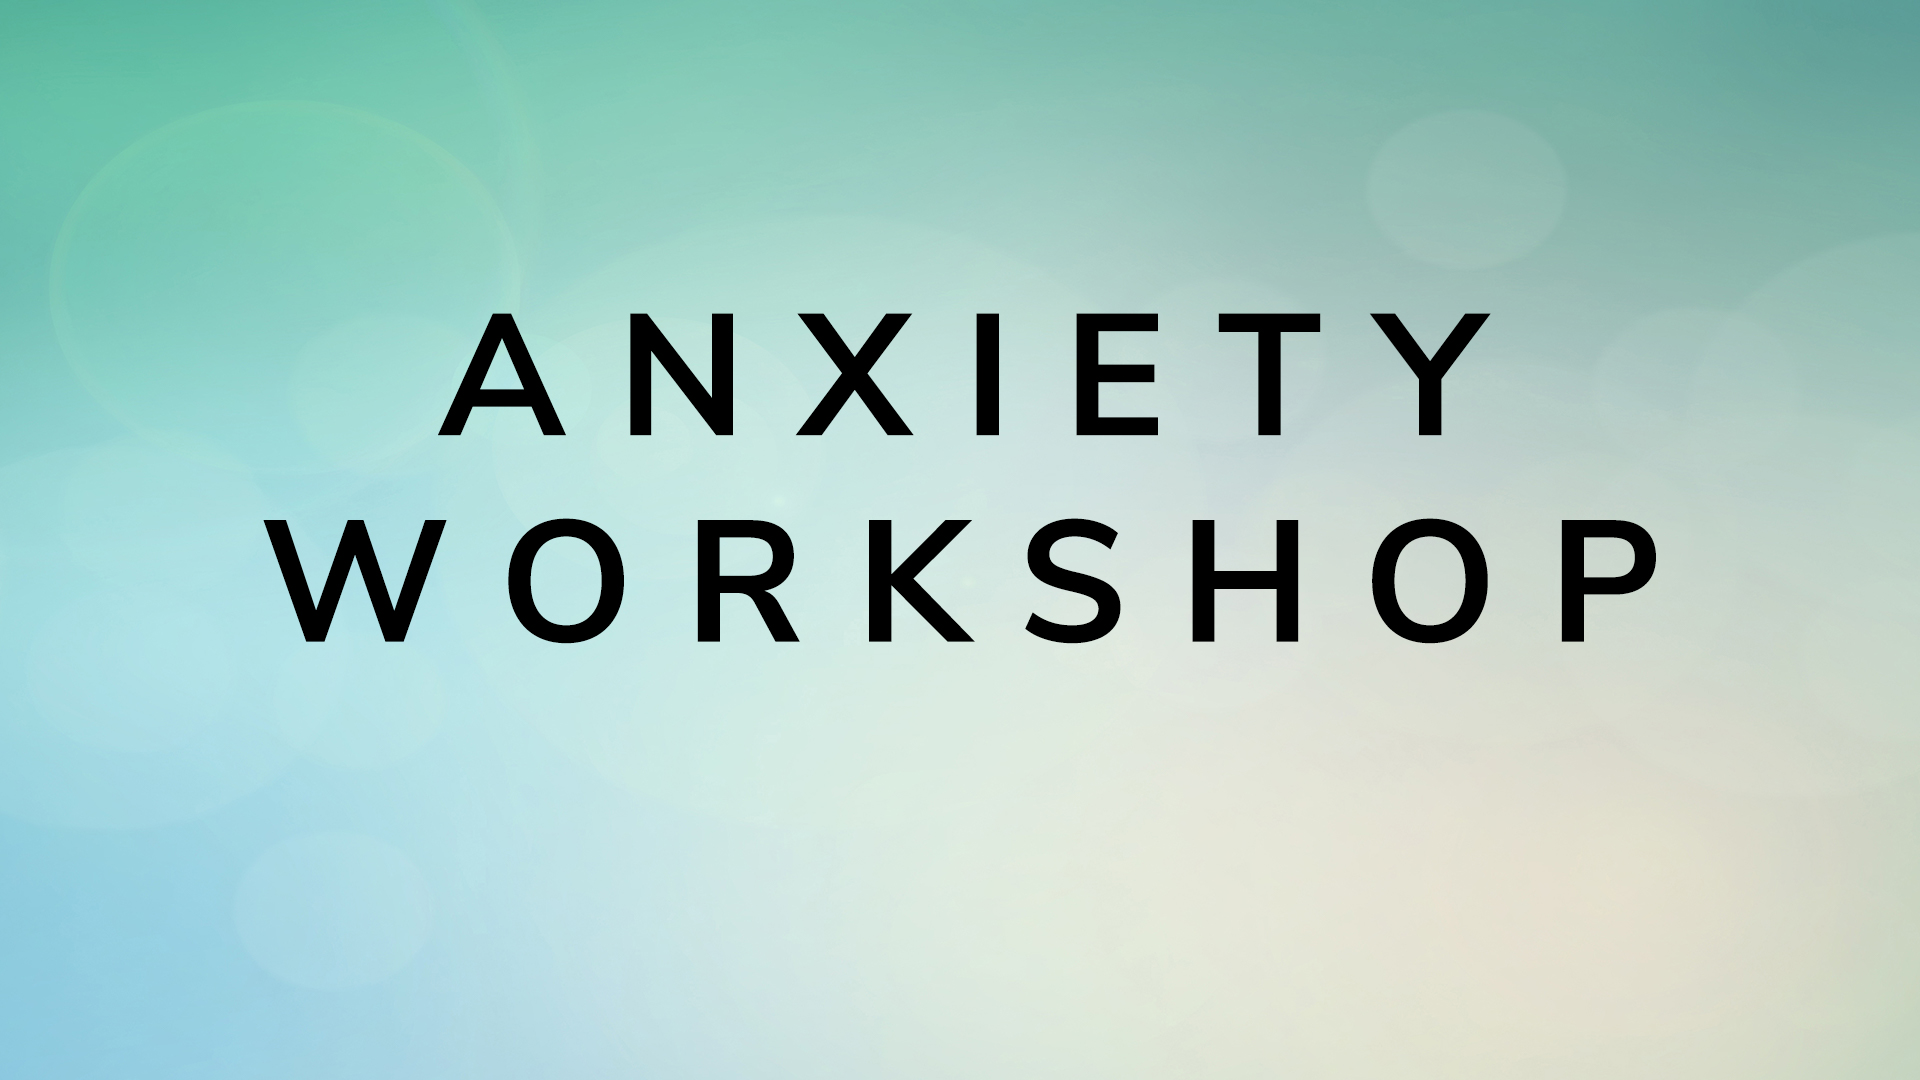 Anxiety Workshop